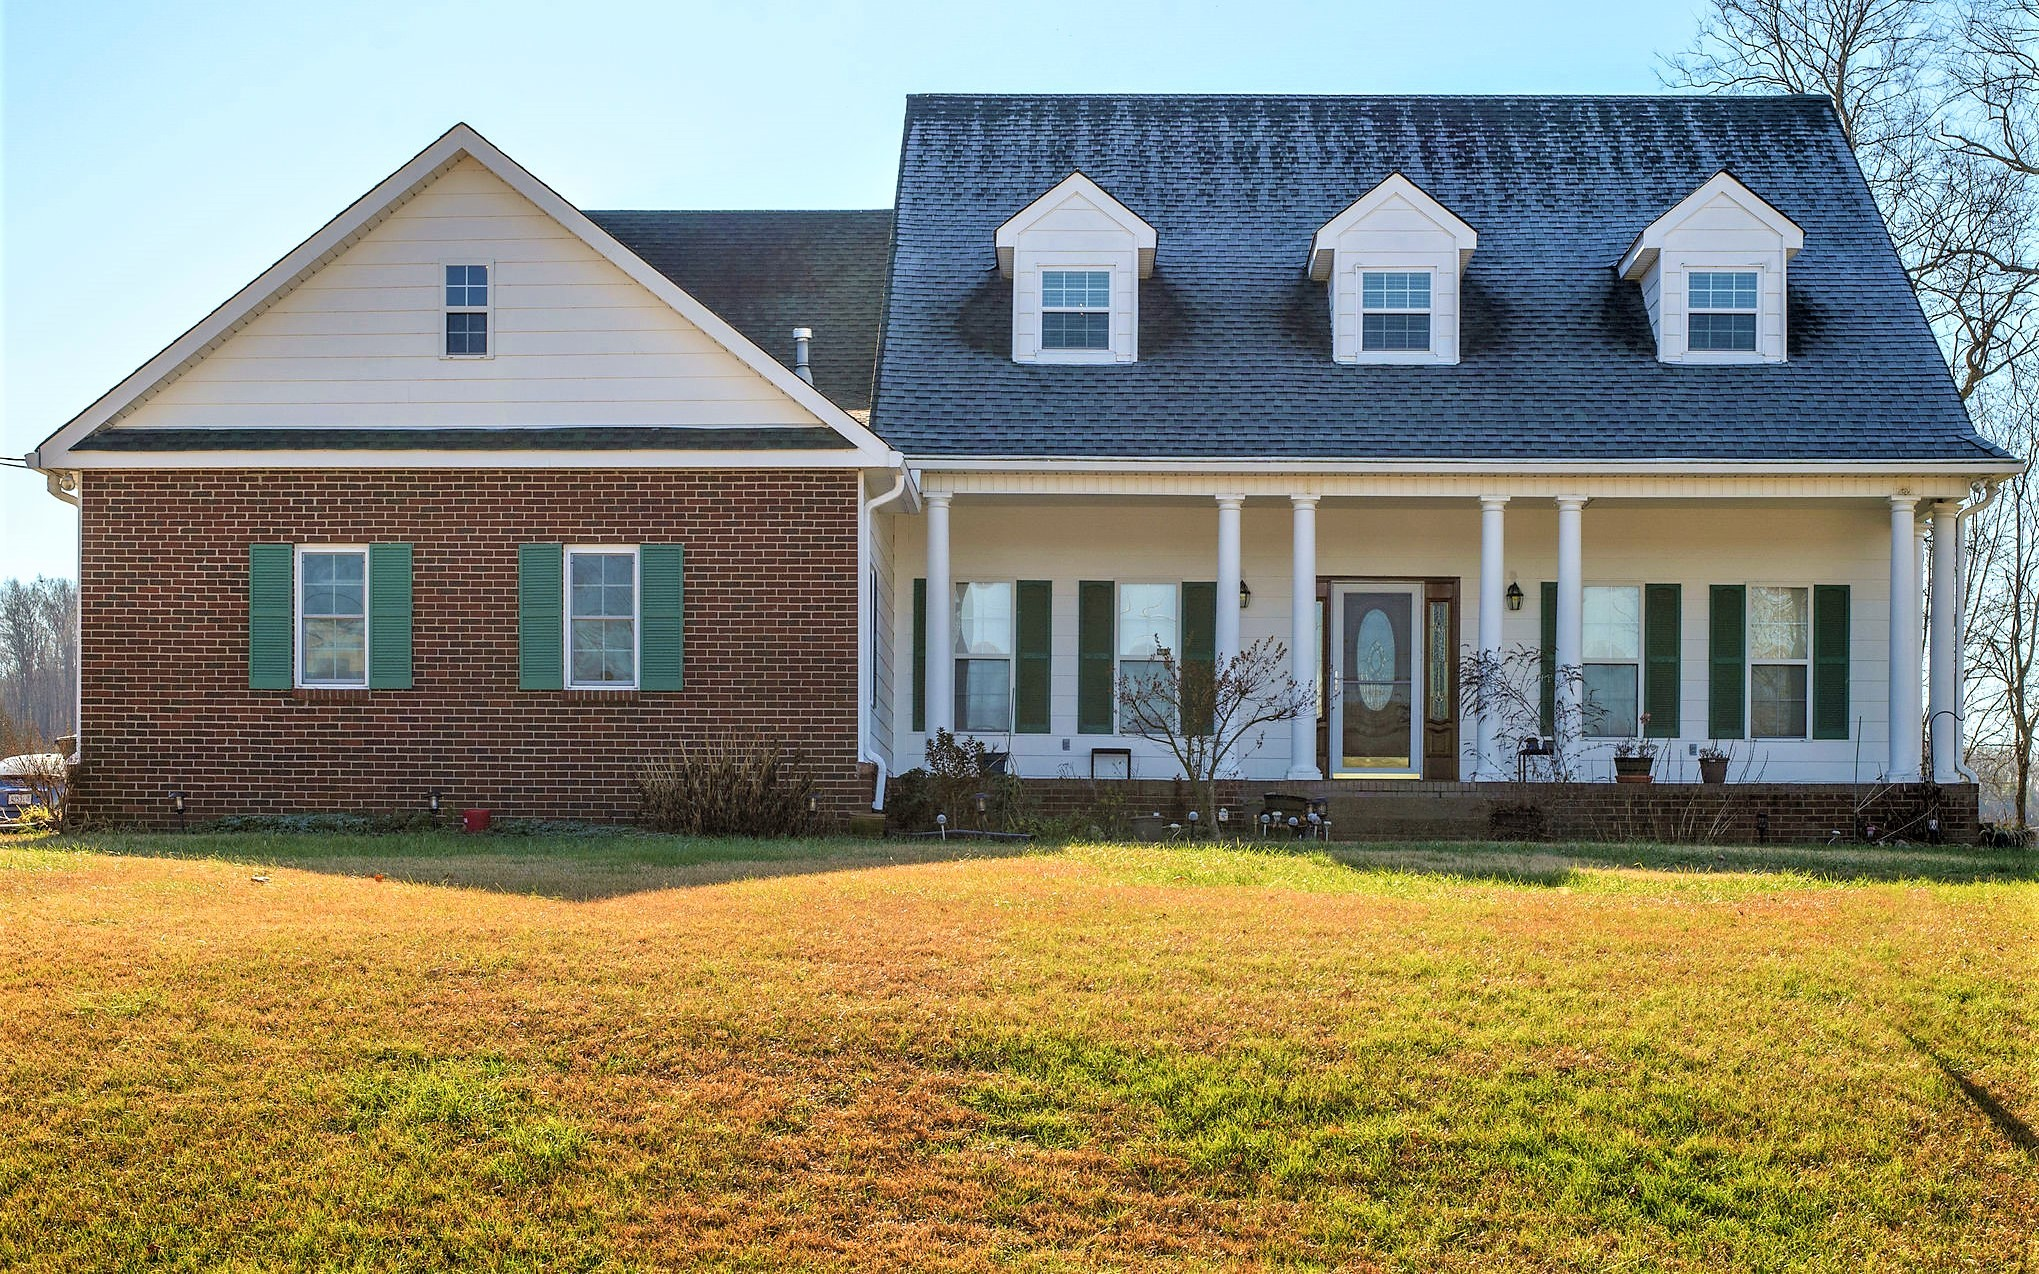 519 Bluff View Dr, Pegram, TN 37143 - Pegram, TN real estate listing